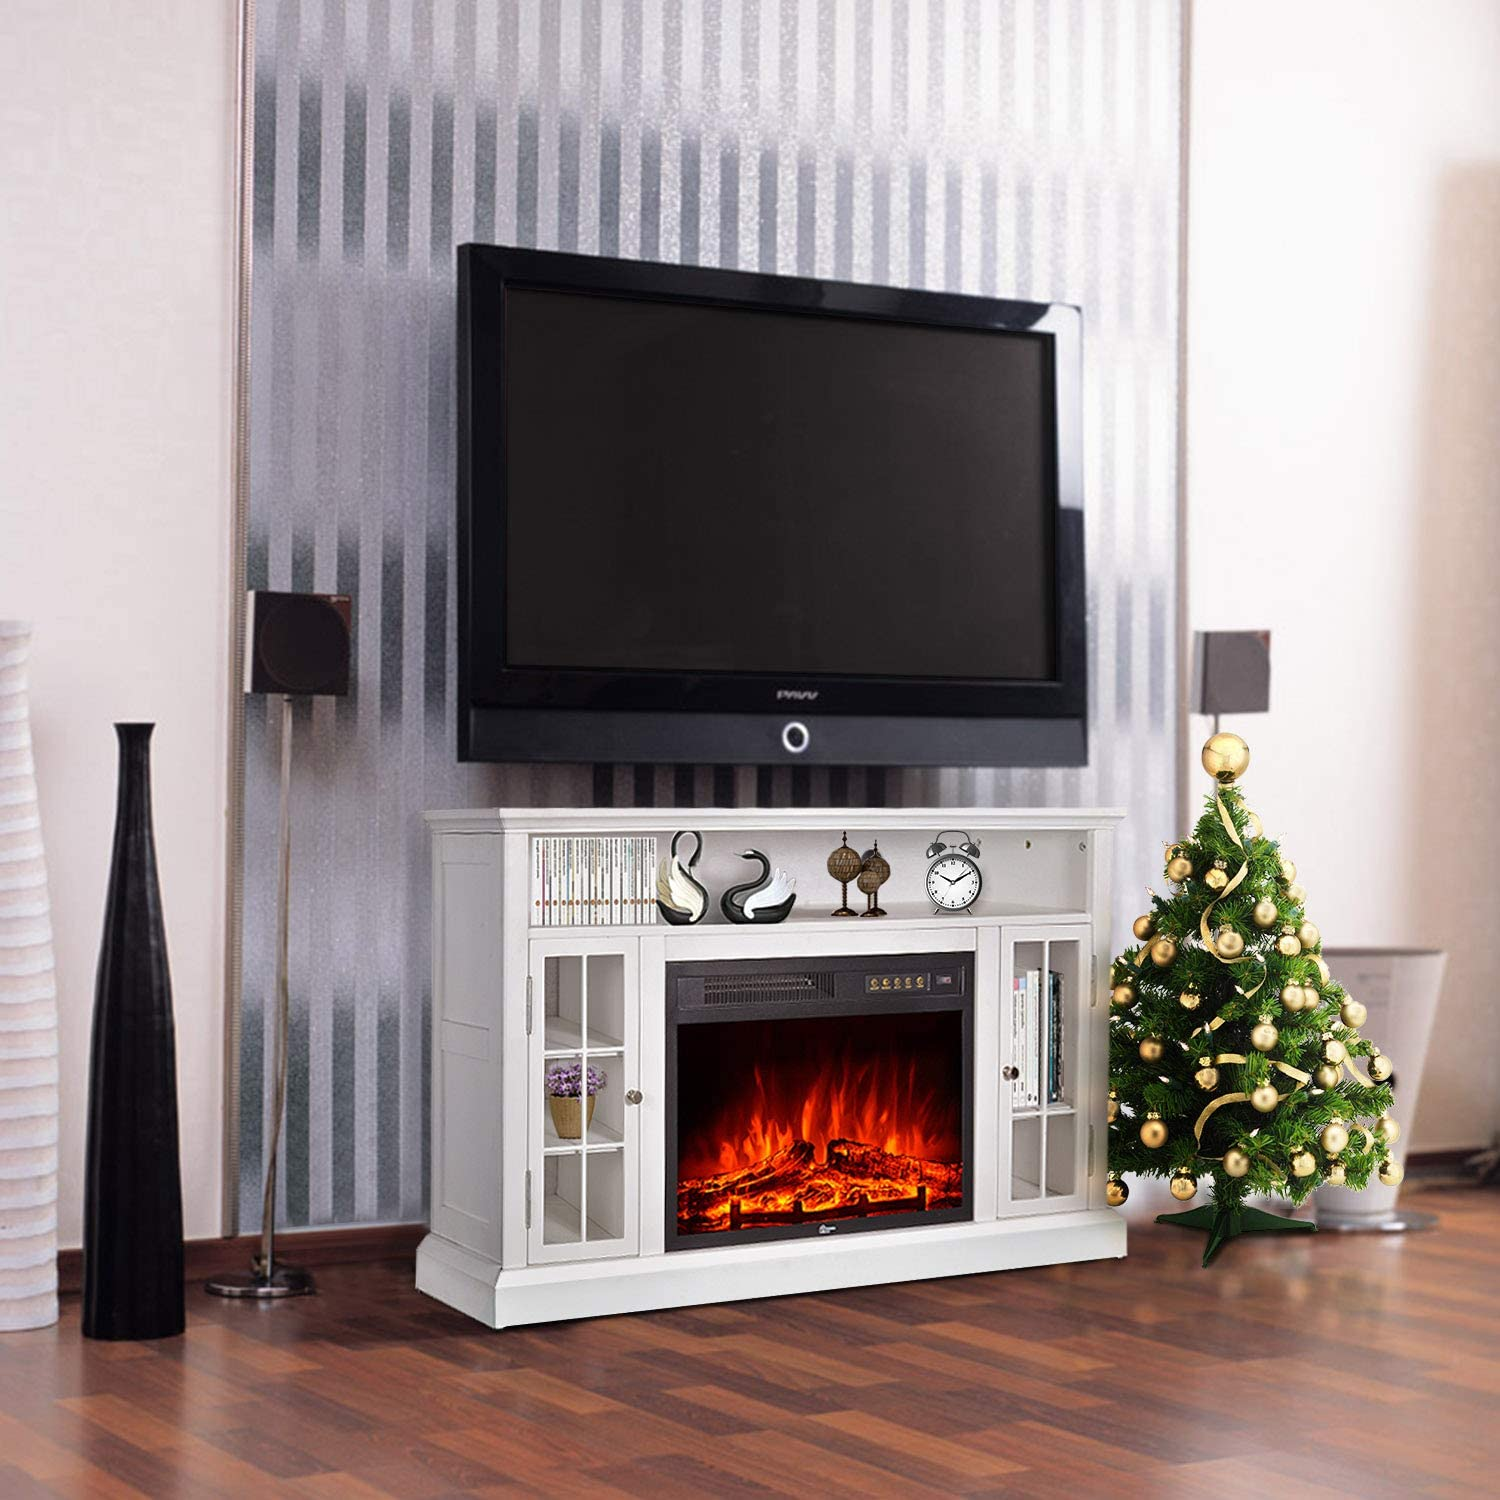 GMHome 46 Inches TV Stand Electric Fireplace Insert Media Console